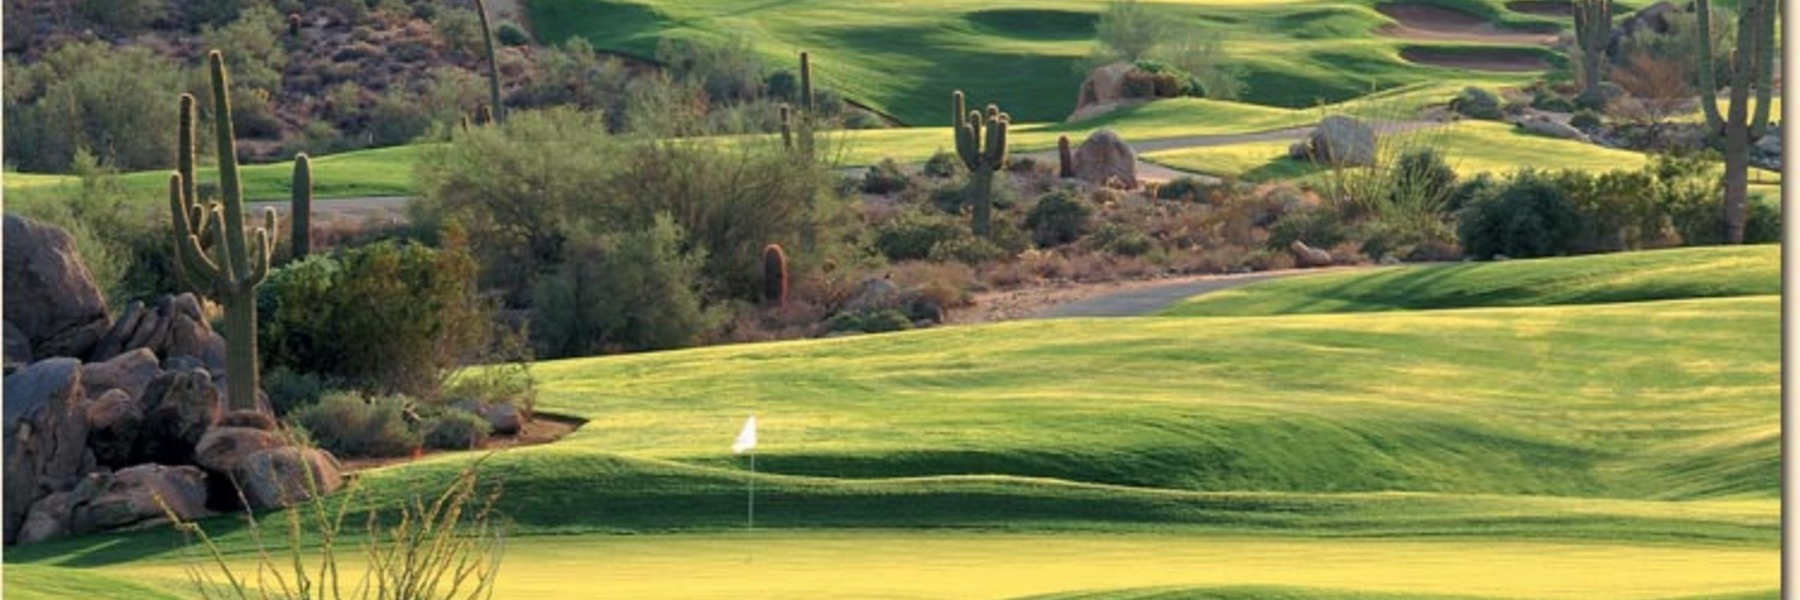 Golf Vacation Package - Marriott at McDowell Mtns + 4-Rounds Golf for $197!